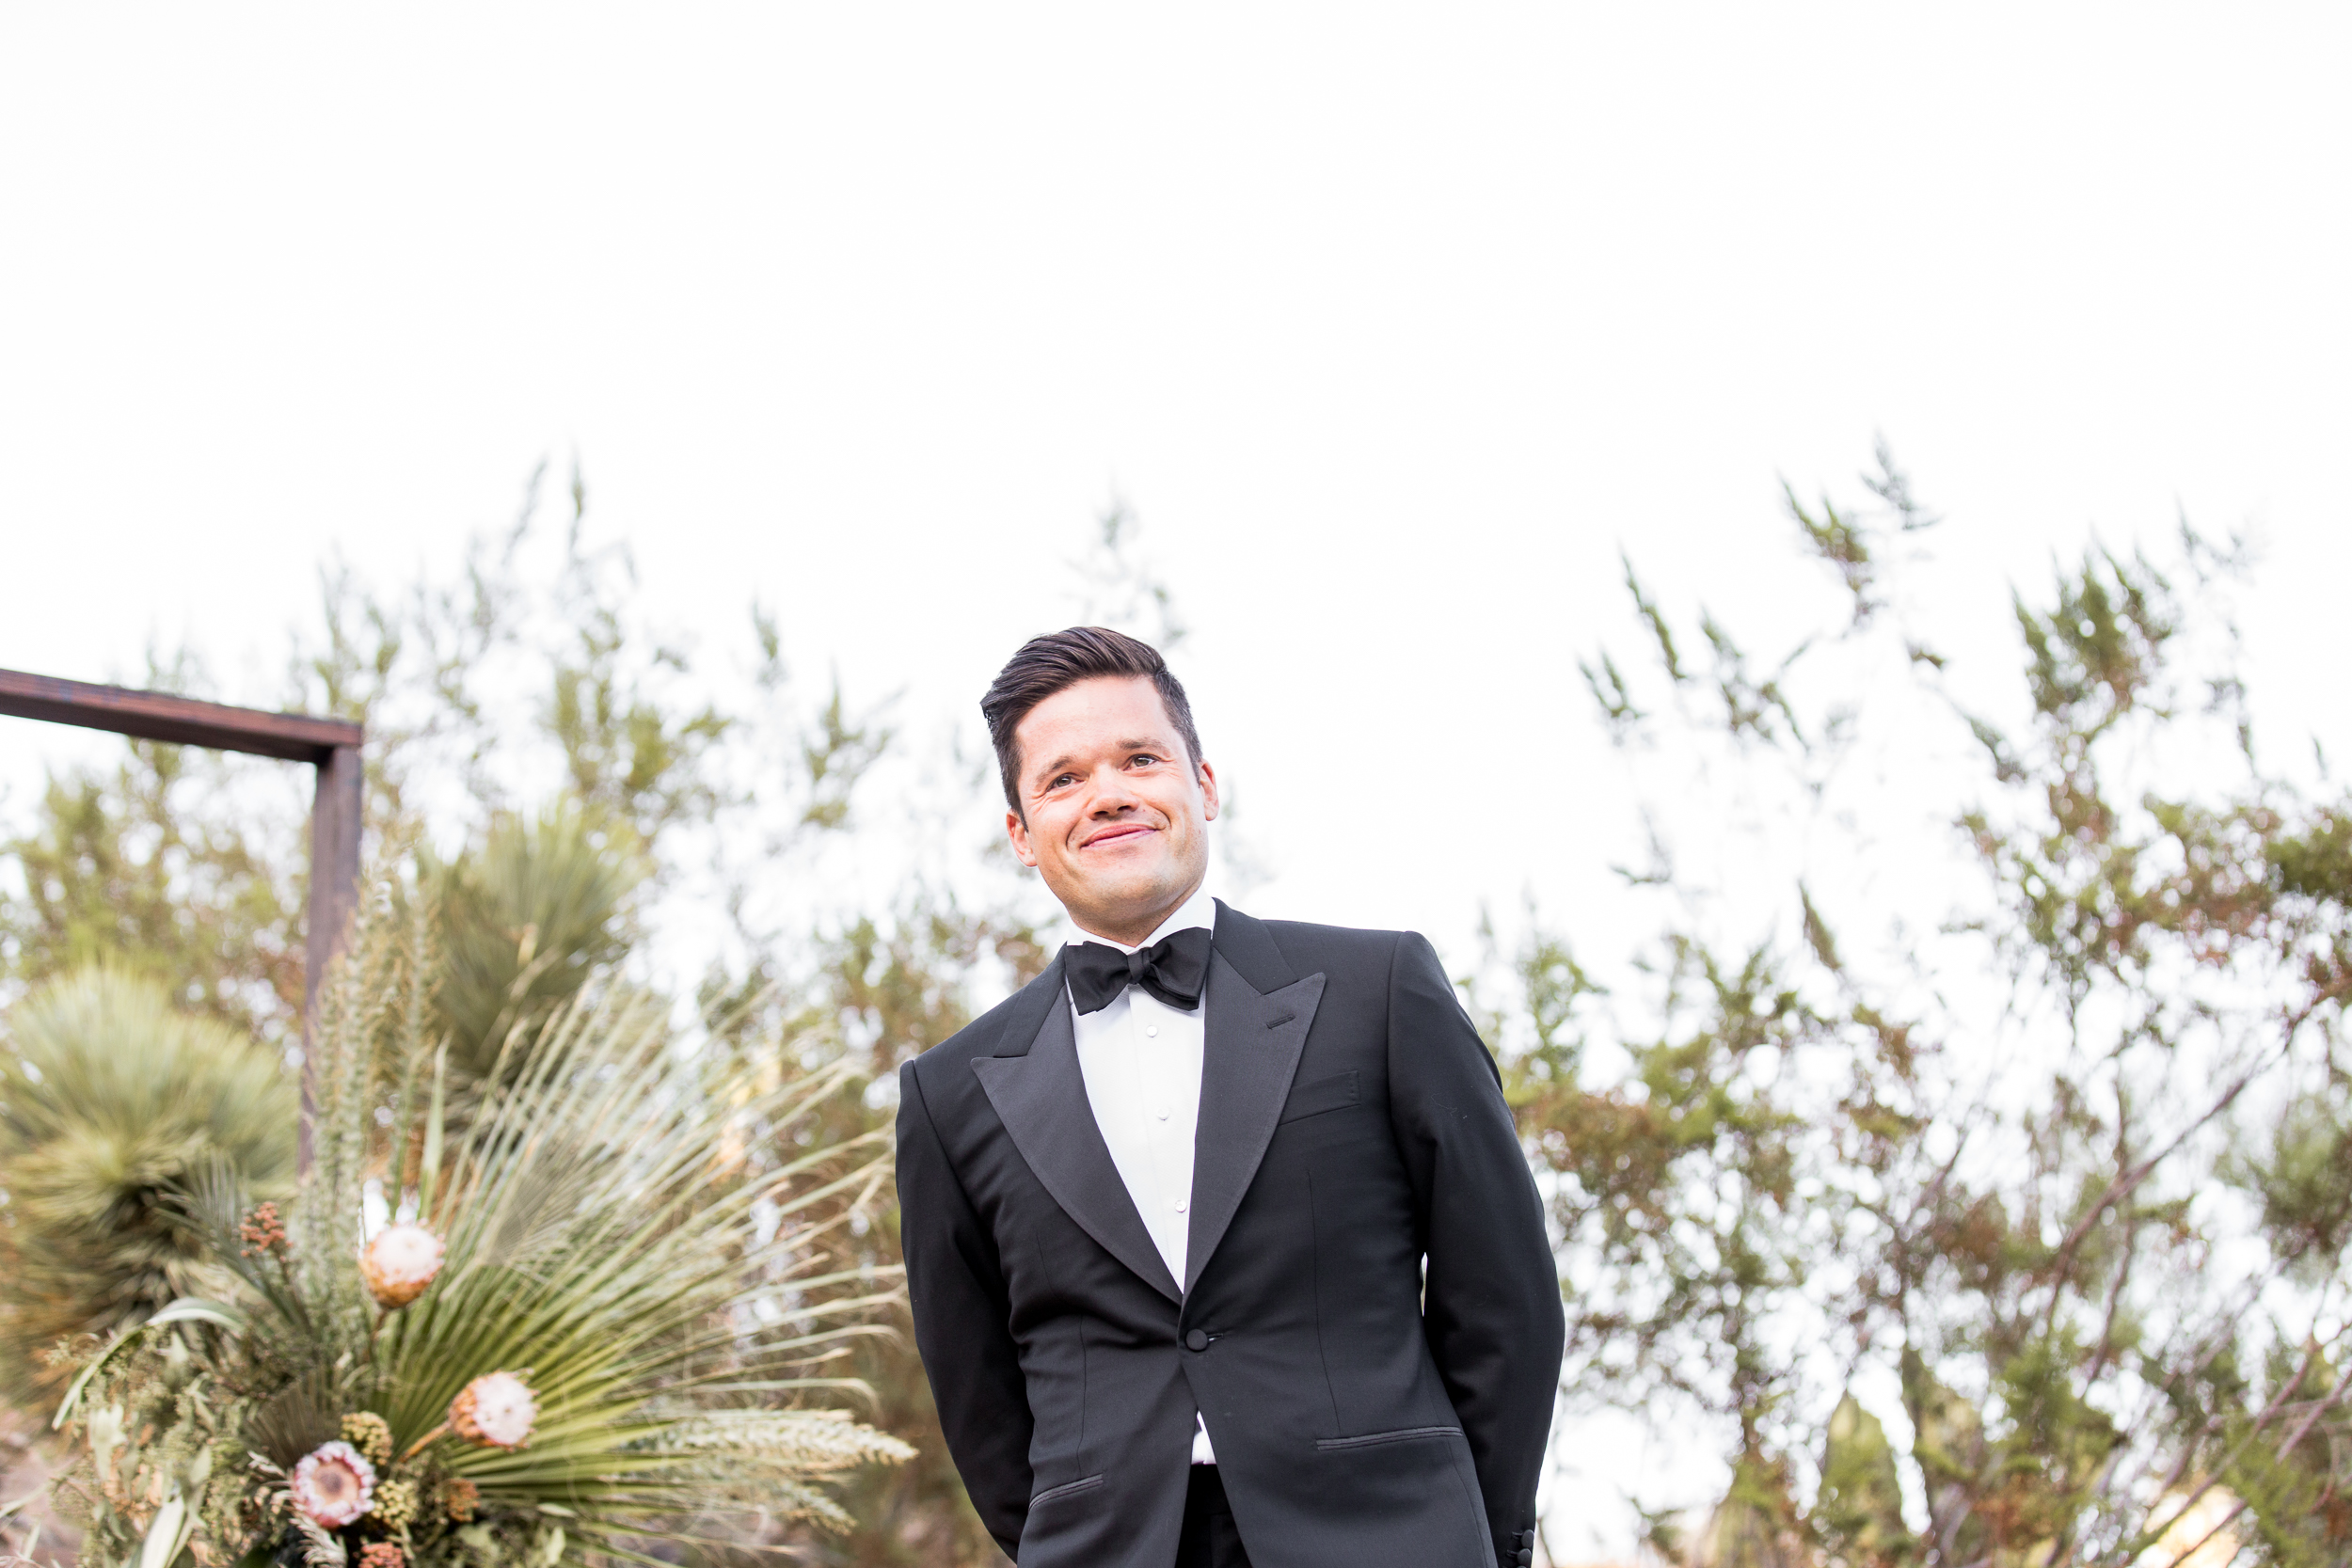 palm_springs_wedding_photographer_30.jpg